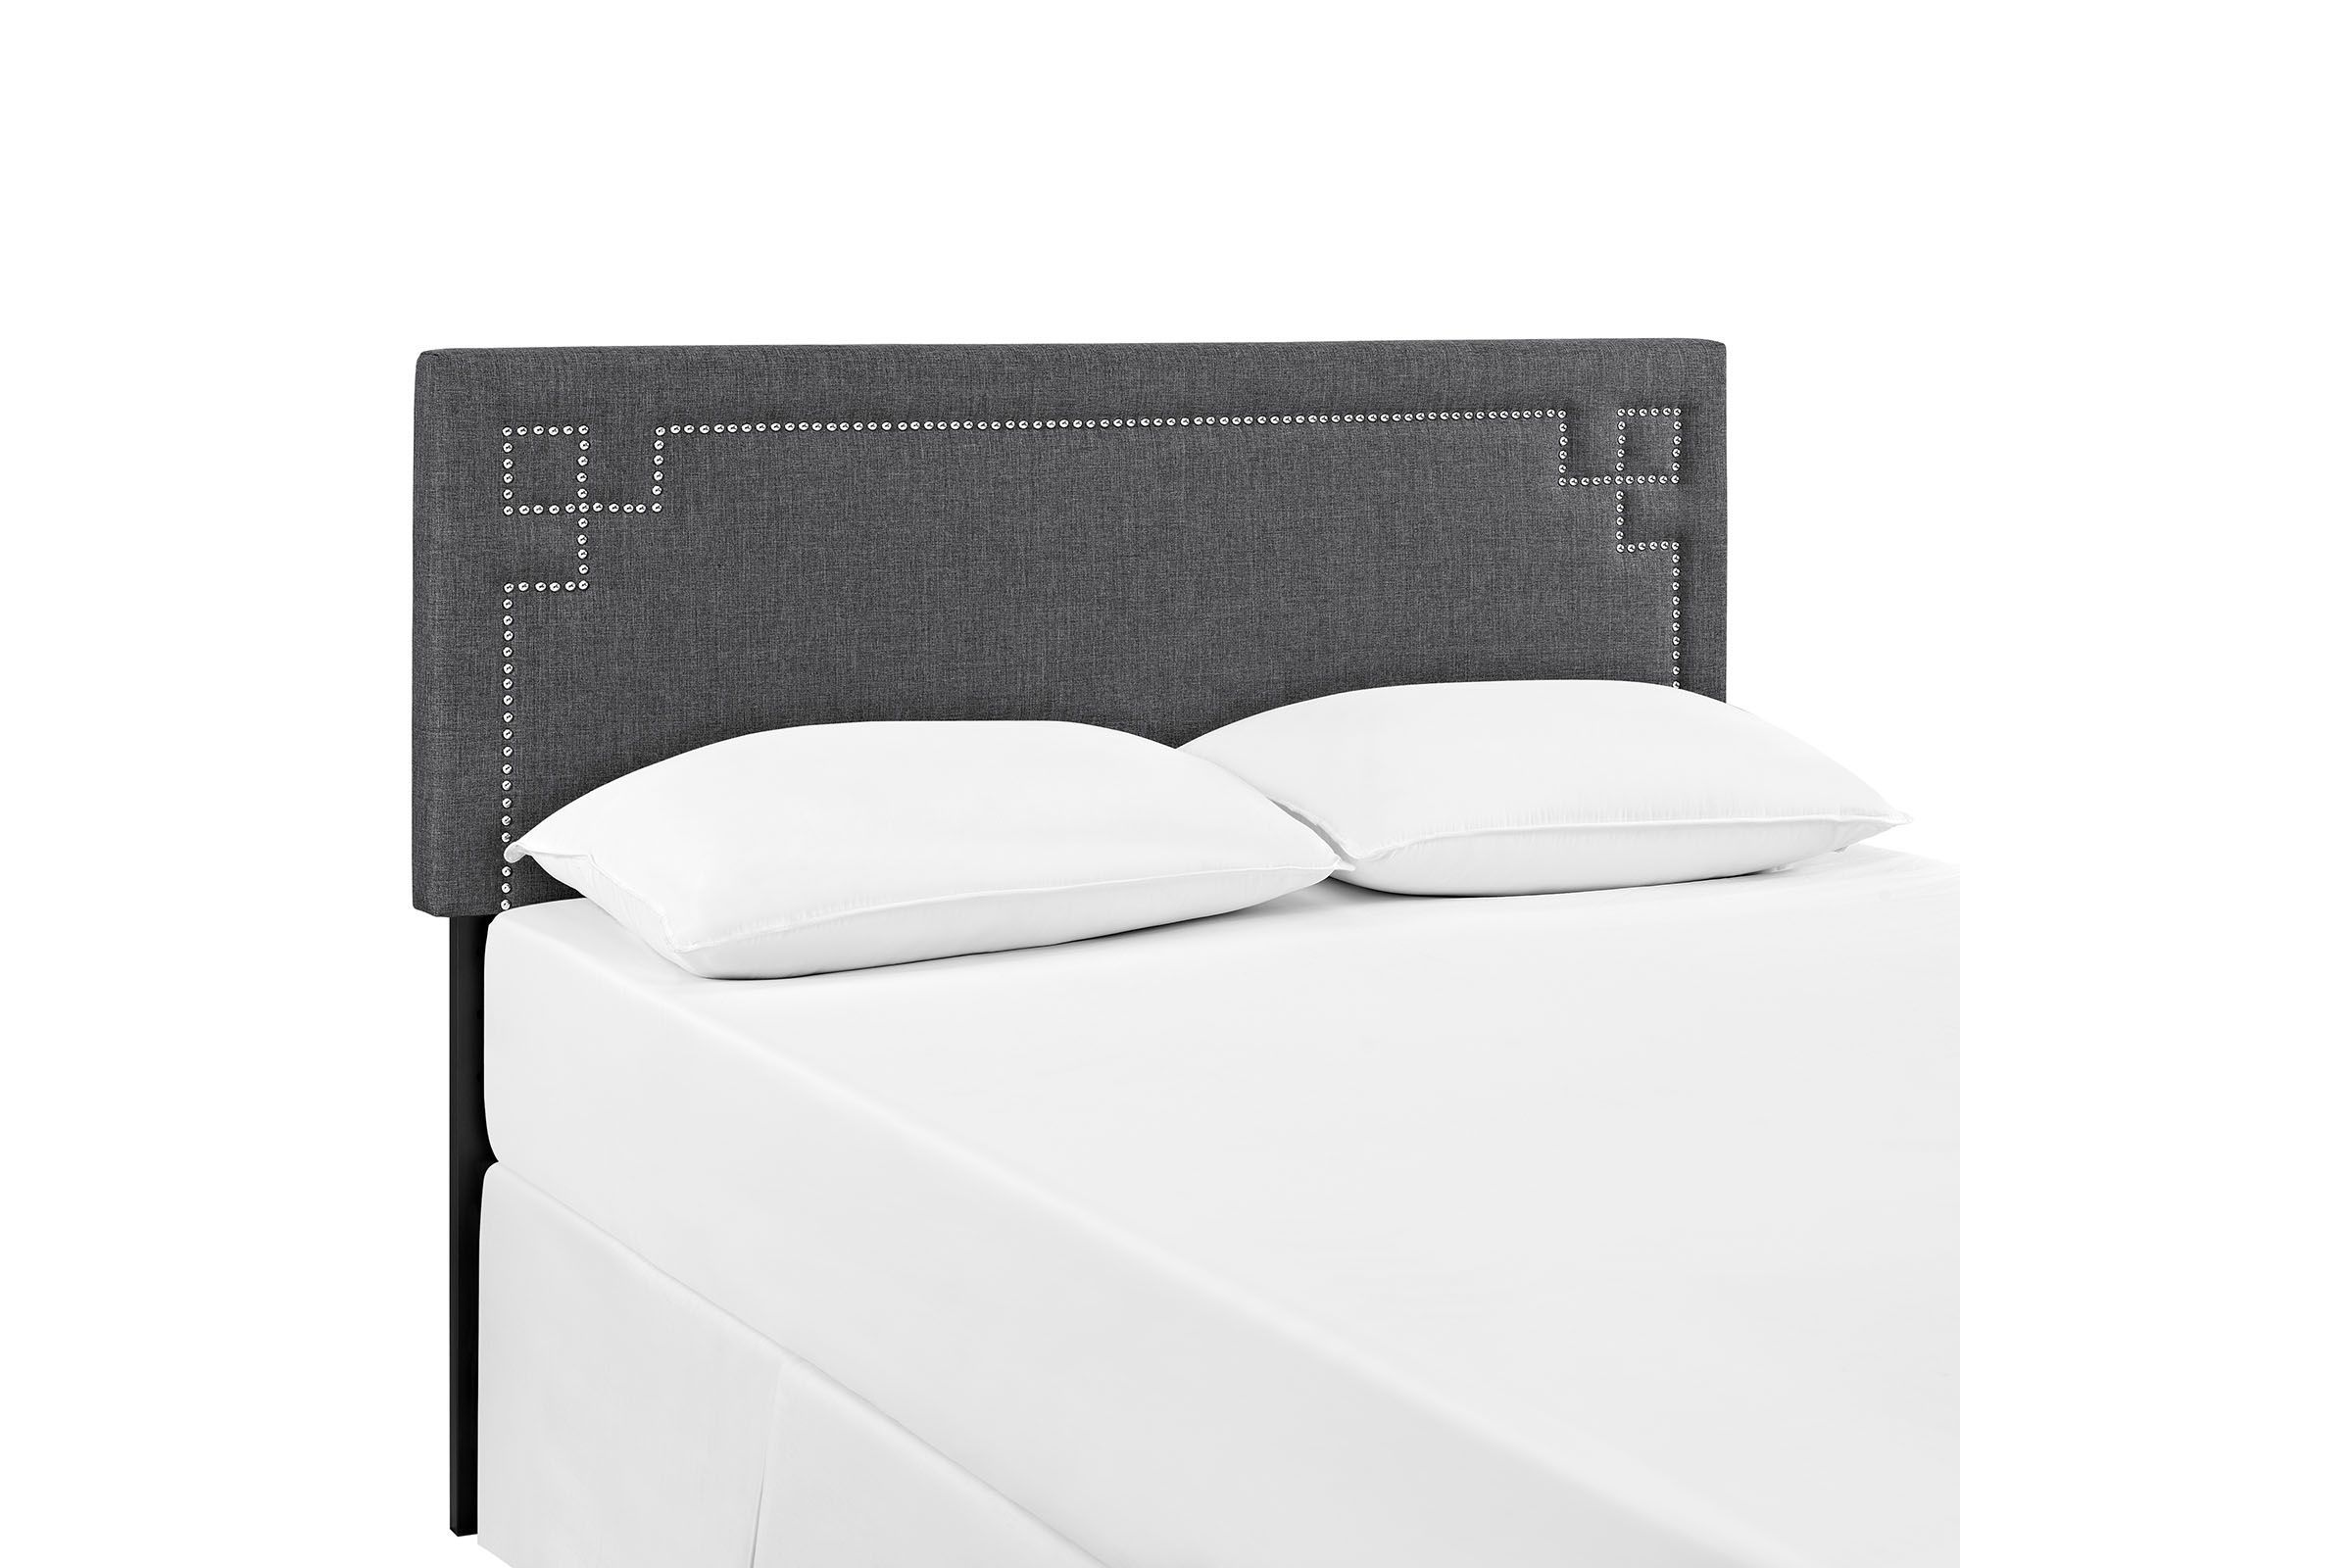 Josie King Upholstered Fabric Headboard In Grey By Modway In 2020 Platform Bed Frame White Furniture Bed Frame